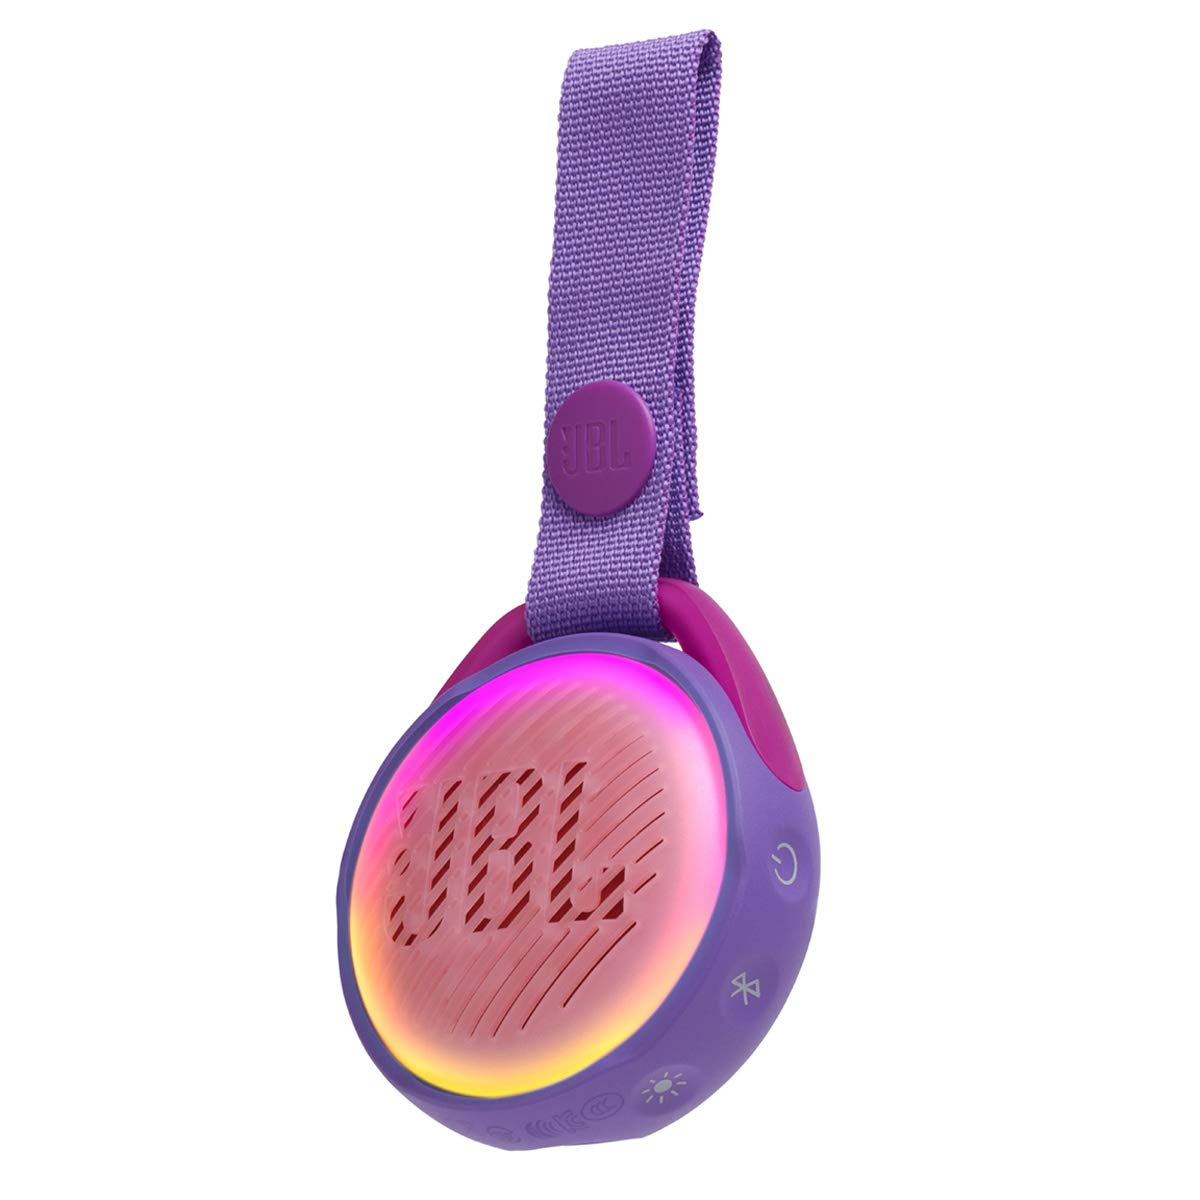 JBL JR POP - Waterproof portable Bluetooths Speaker Designed for Kids - Purple